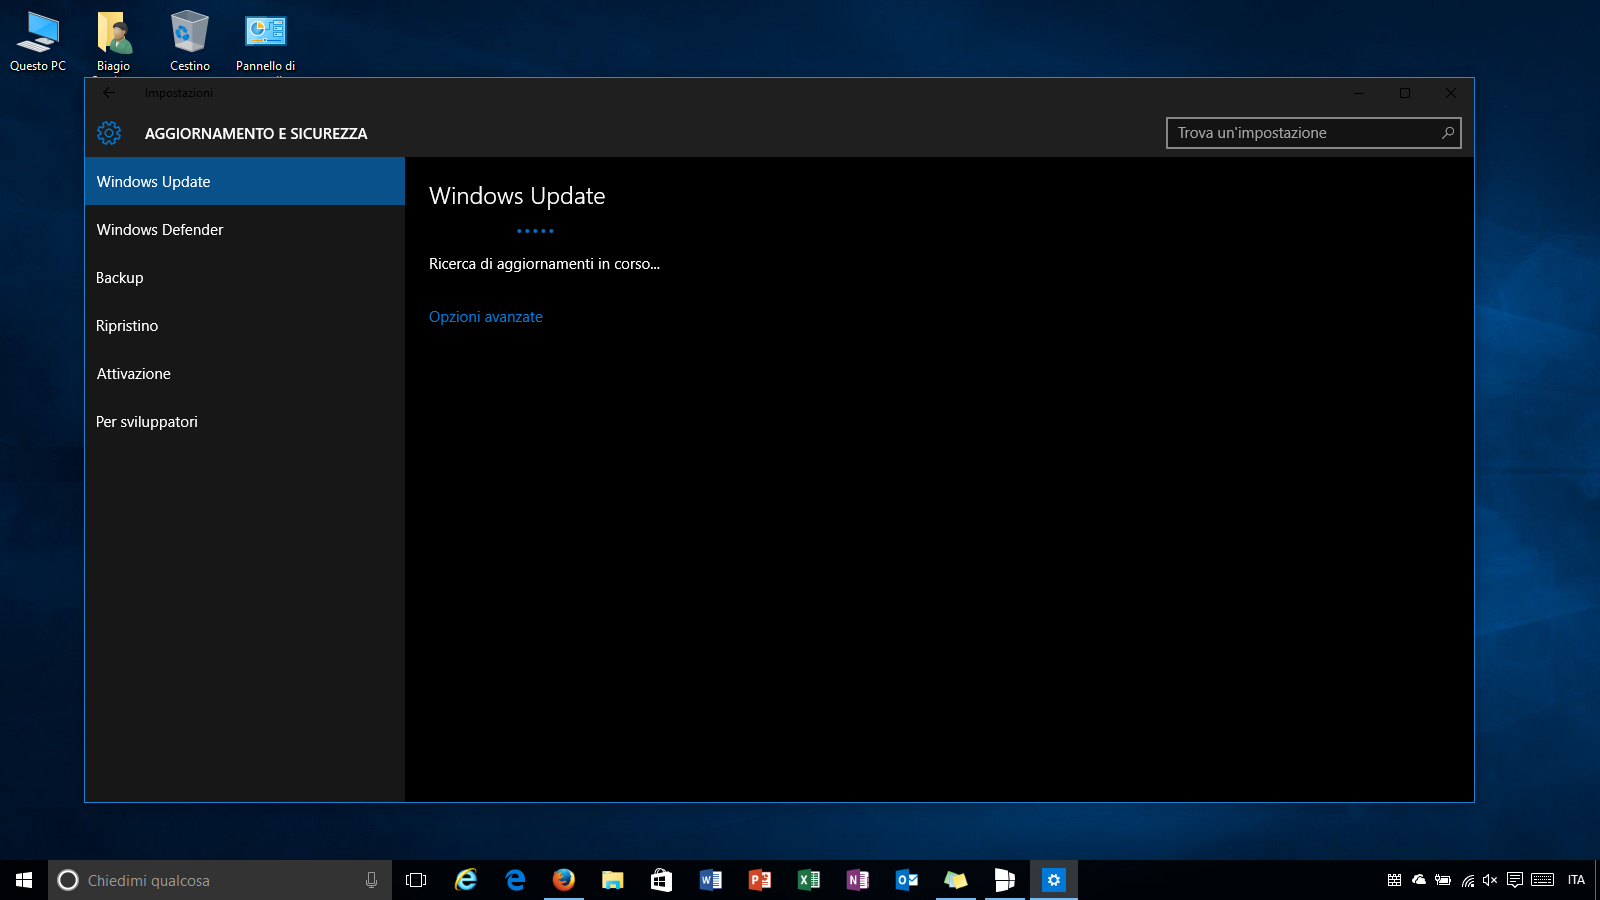 Come risolvere i problemi di windows update for Windows 10 update